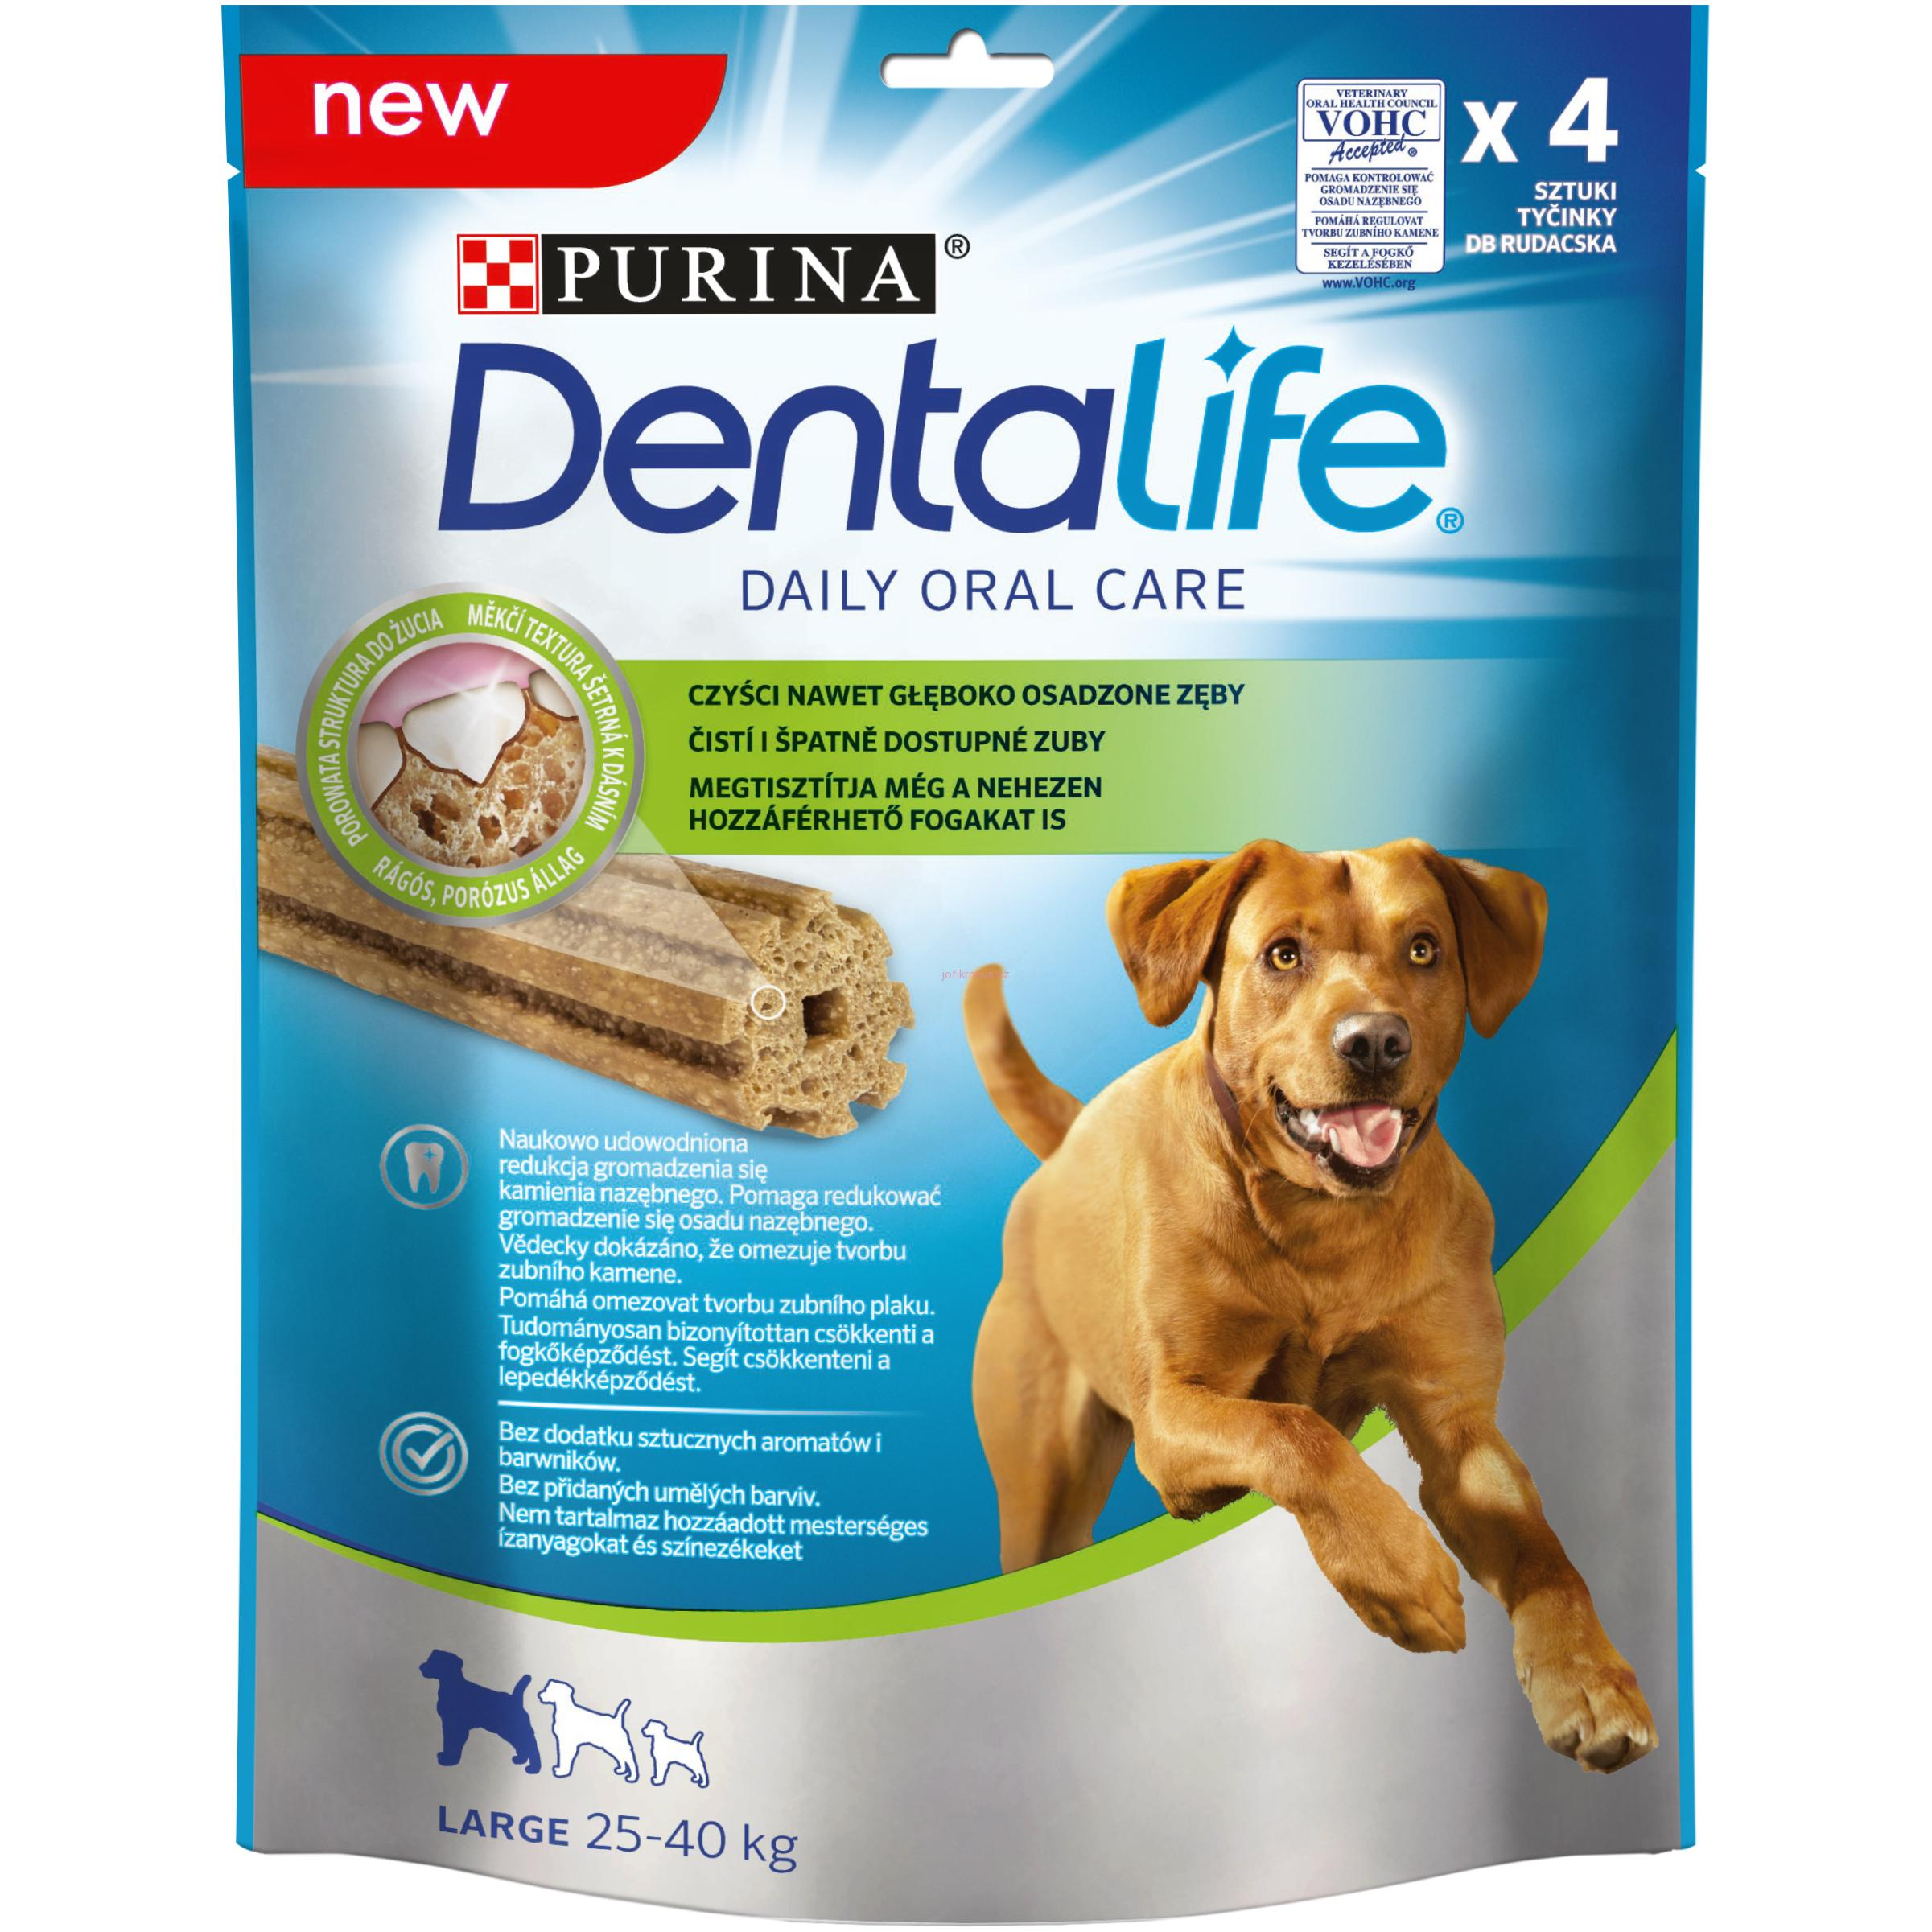 Purina Dentalife Large 4 ks 142 g